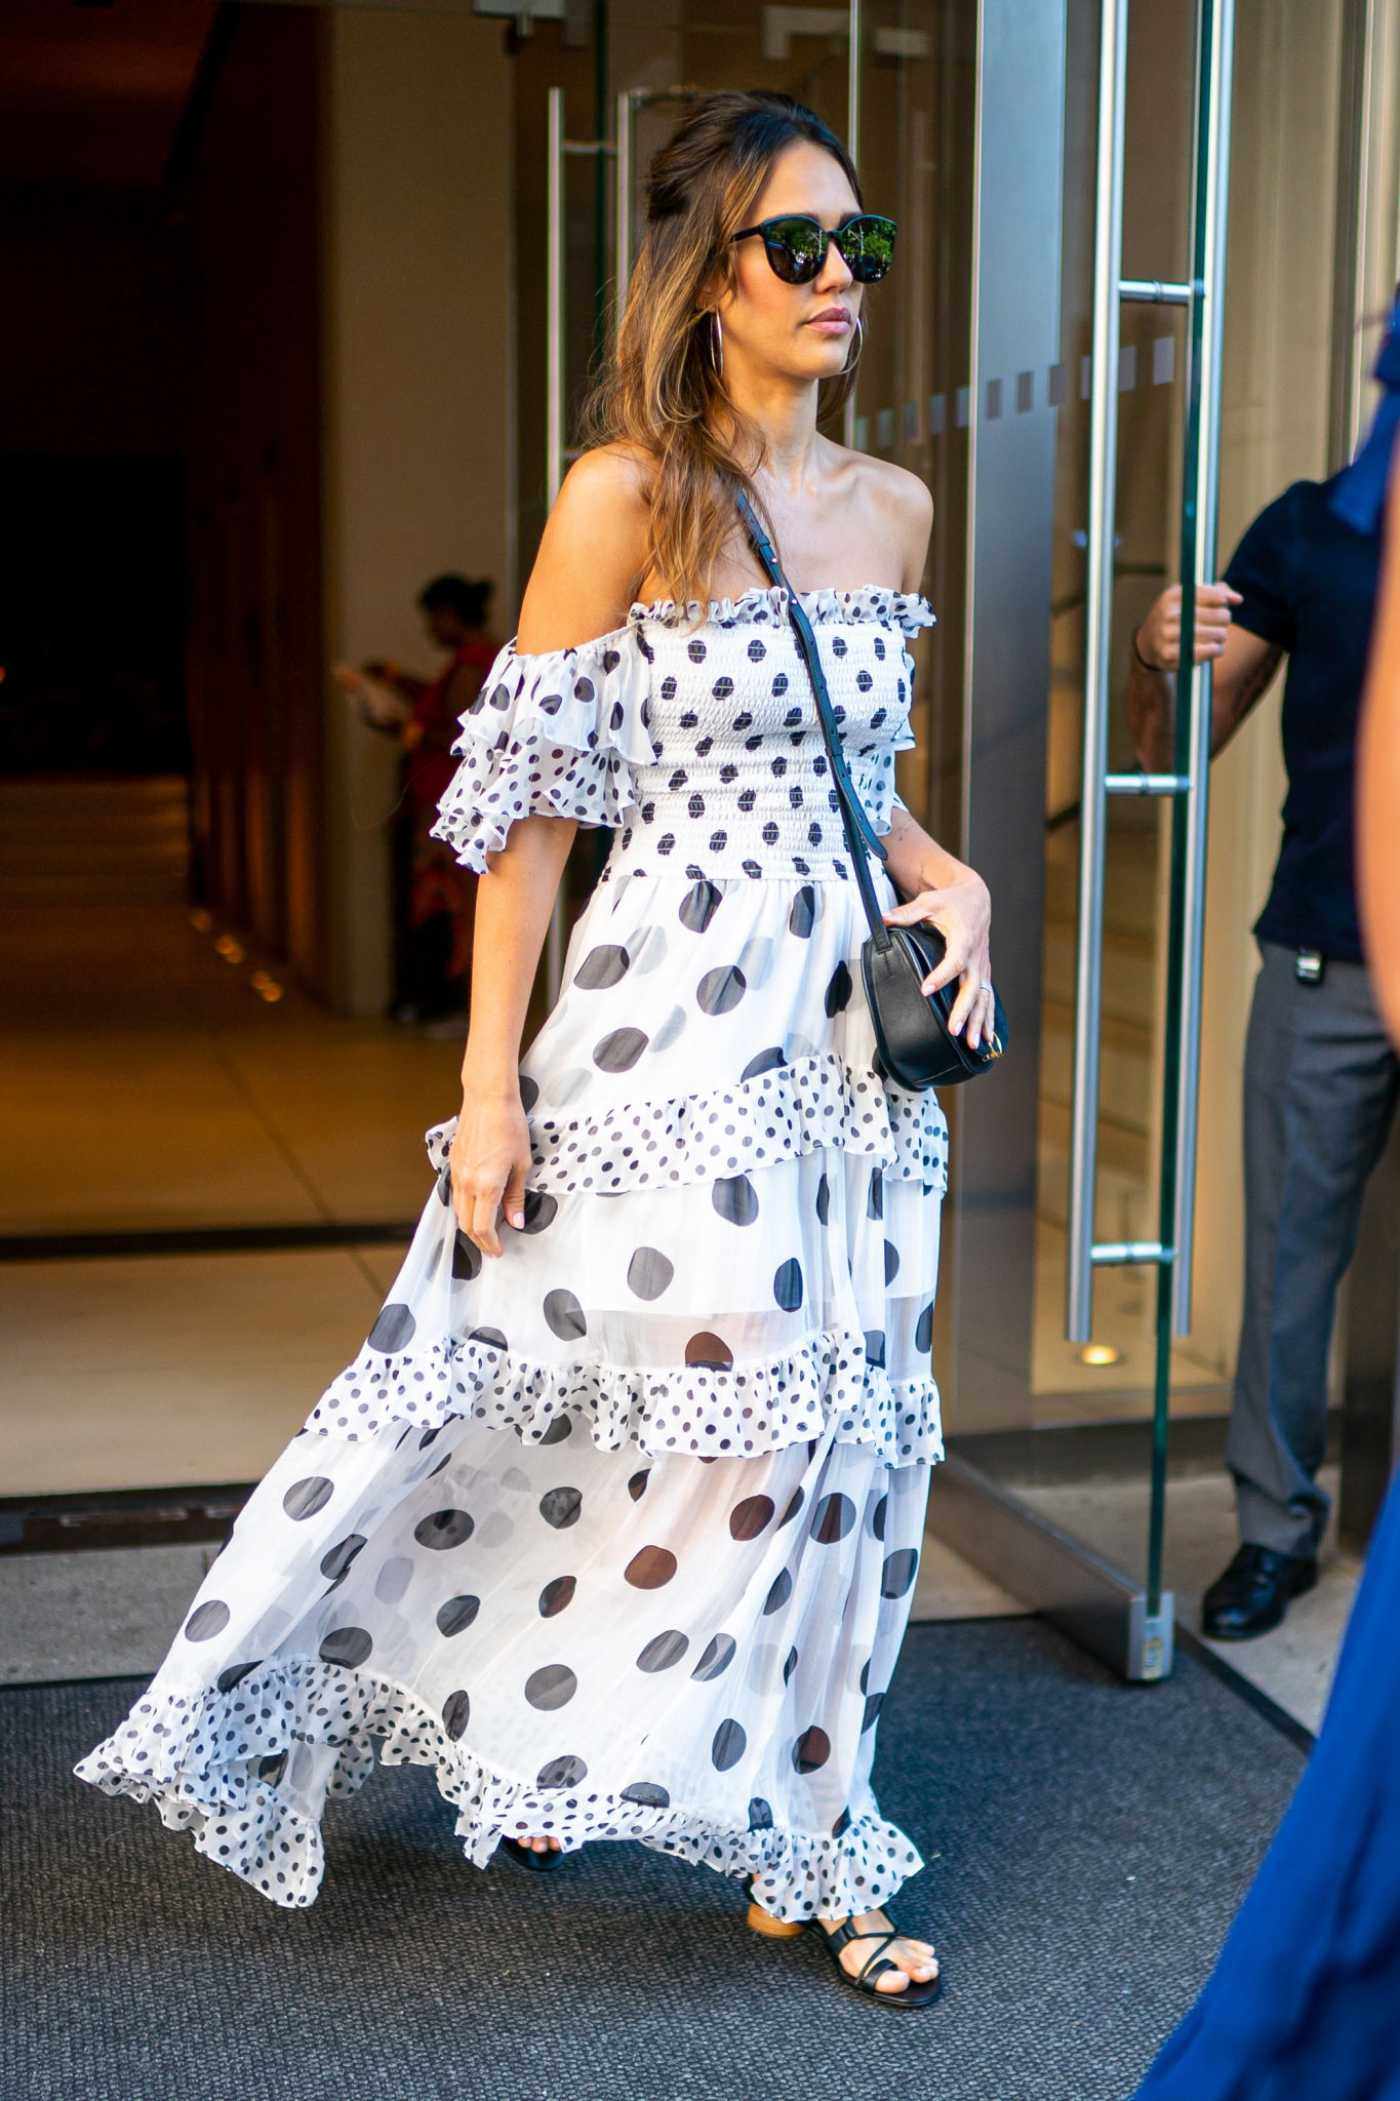 Jessica Alba in a White Polka Dot Dress Was Seen Out in New York City 07/15/2019